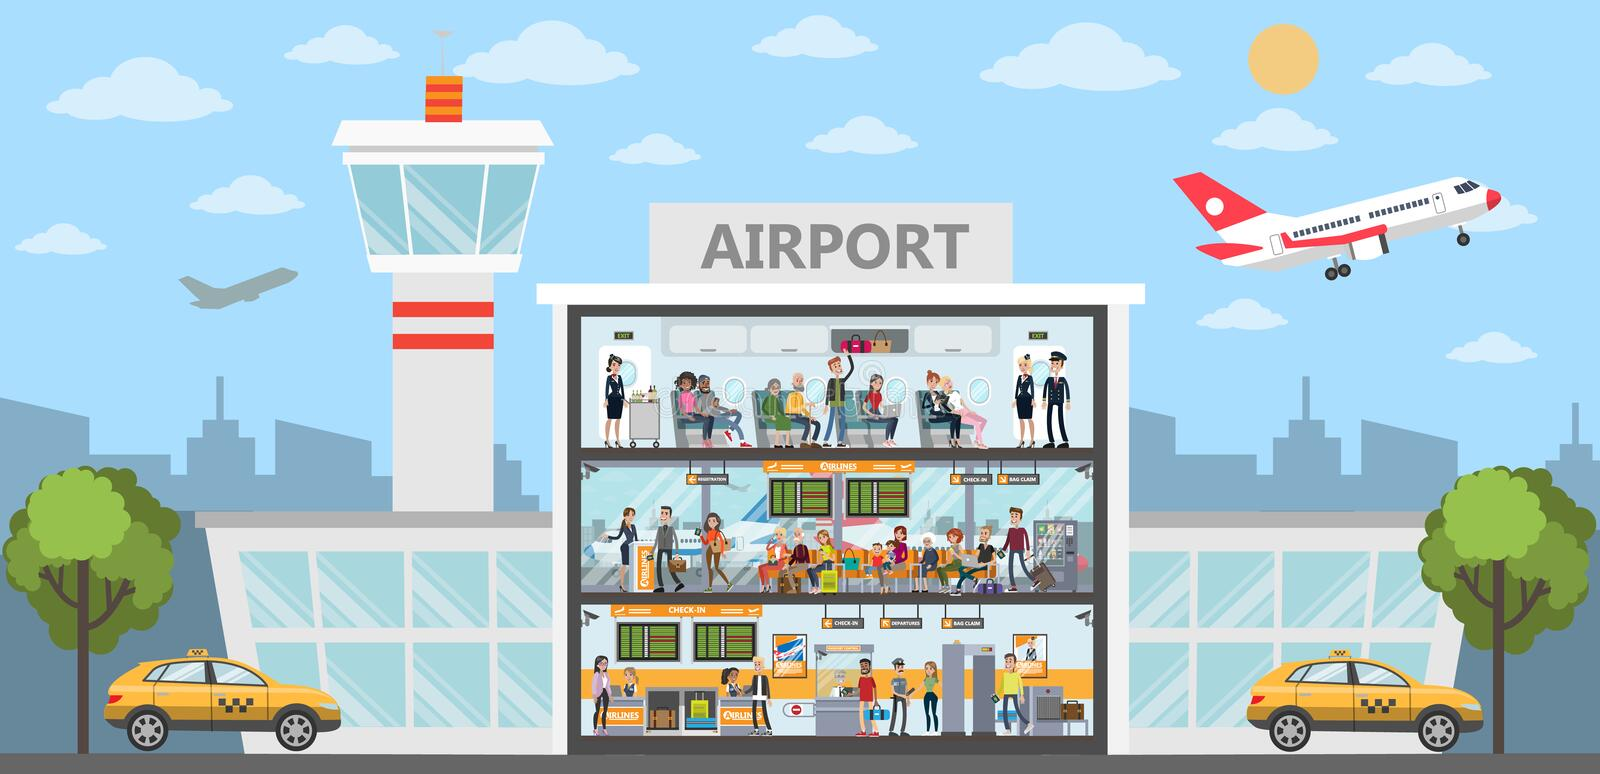 People at airport. royalty free illustration